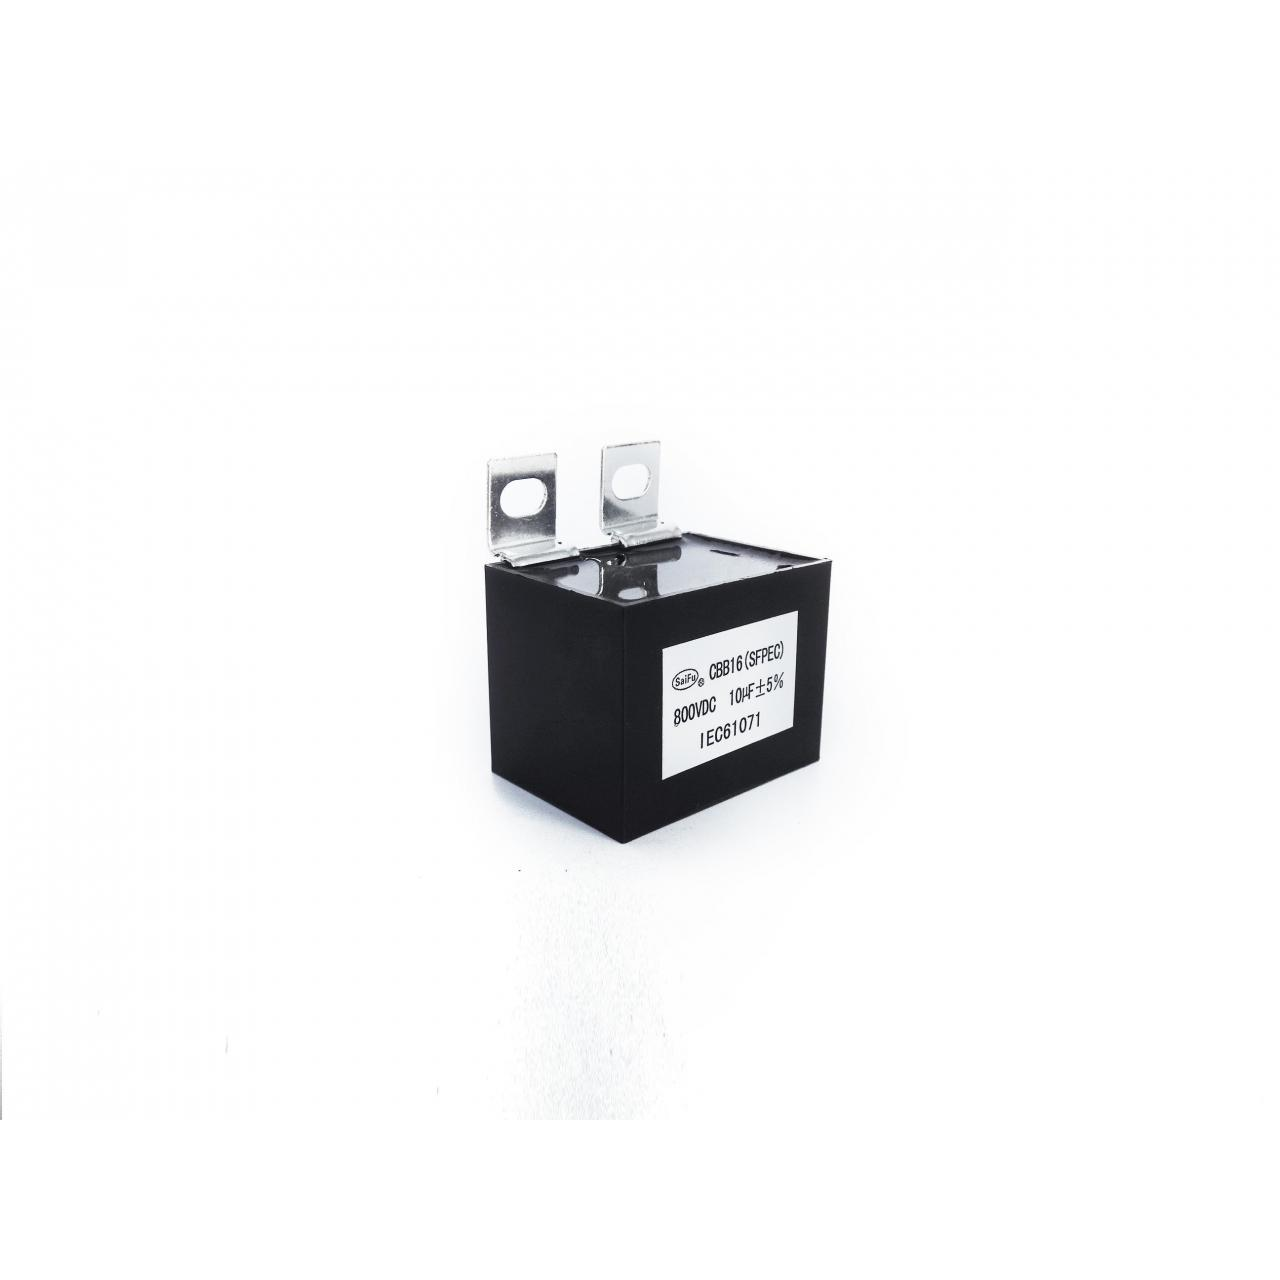 Quality CBB15 800VDC 20uF Industrial Capacitors for sale